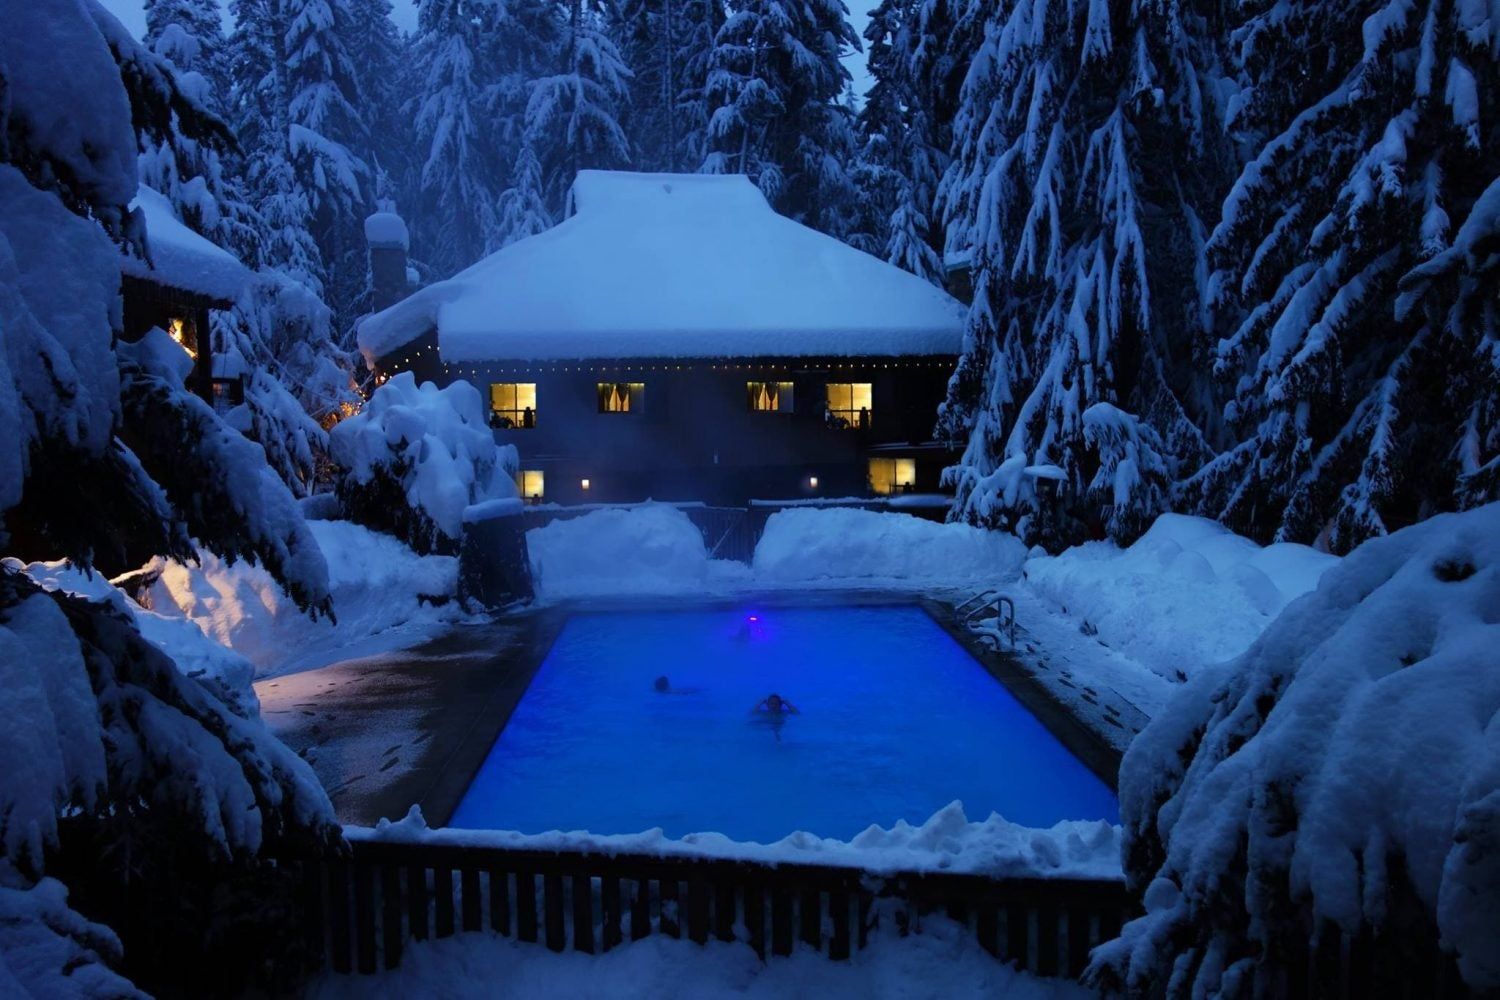 snowy scene overlooking heated pool at alta crystal resort